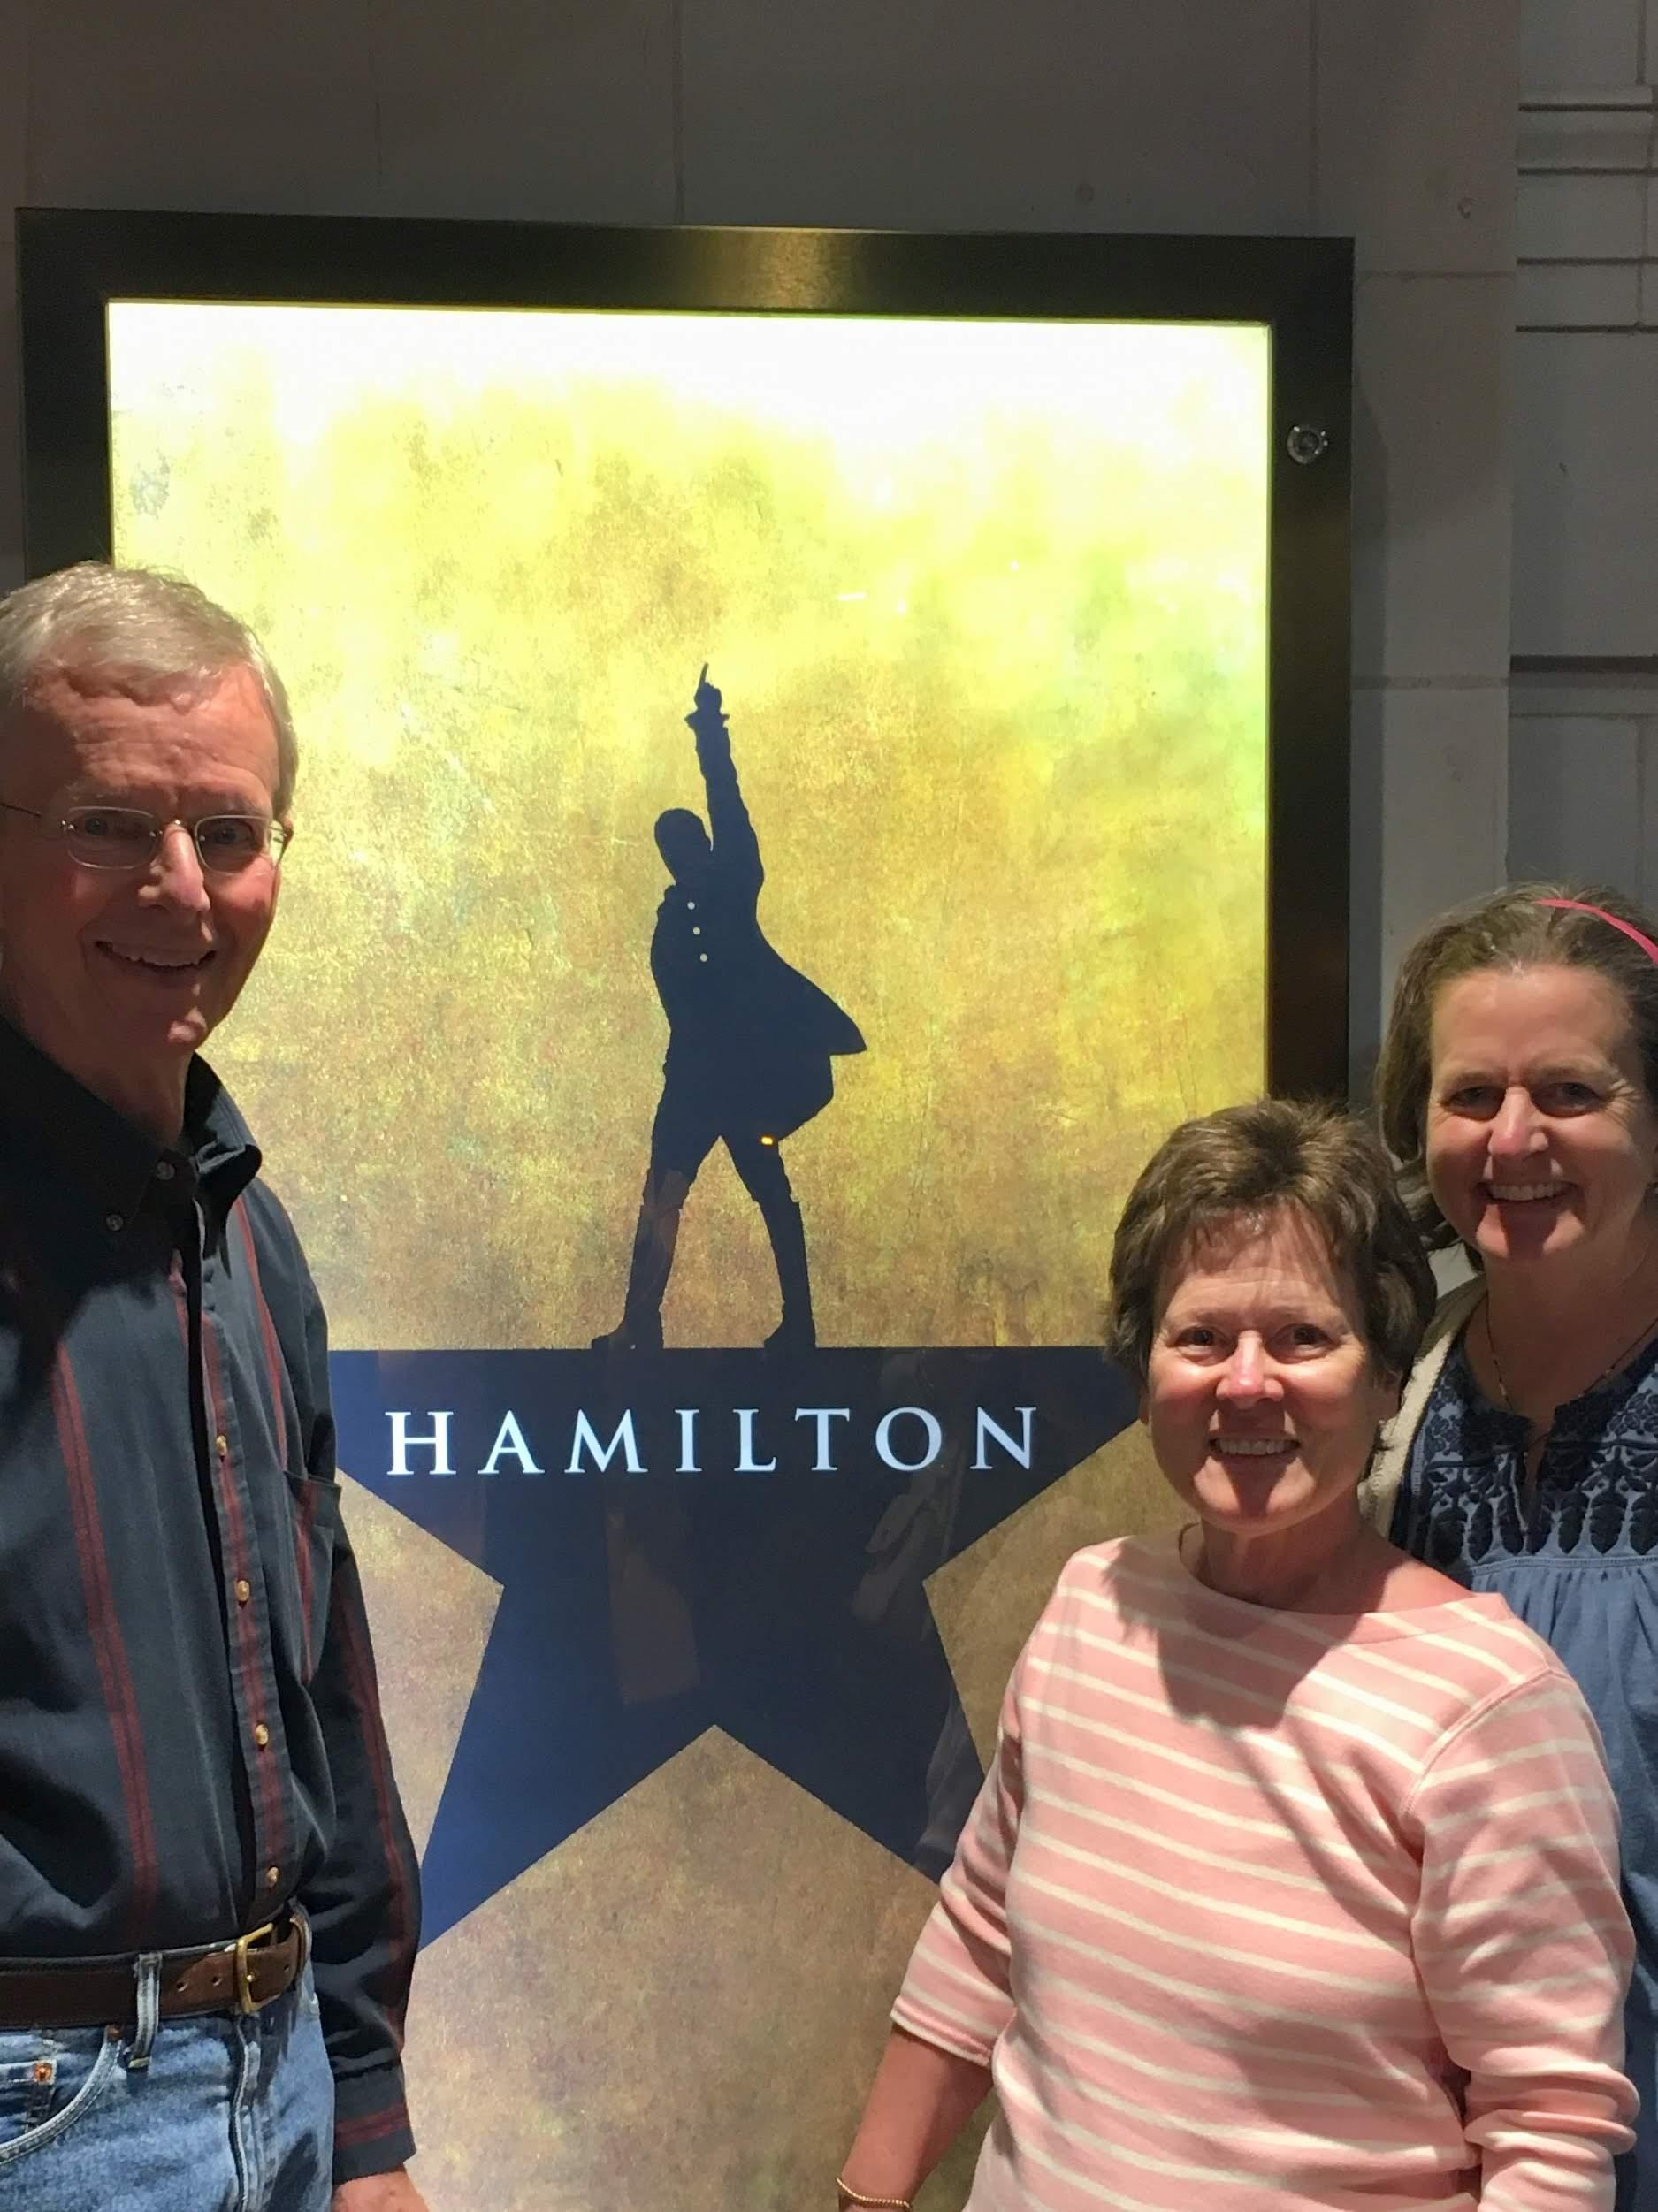 My parents & I were fortunate to find three tickets to Hamilton in London.